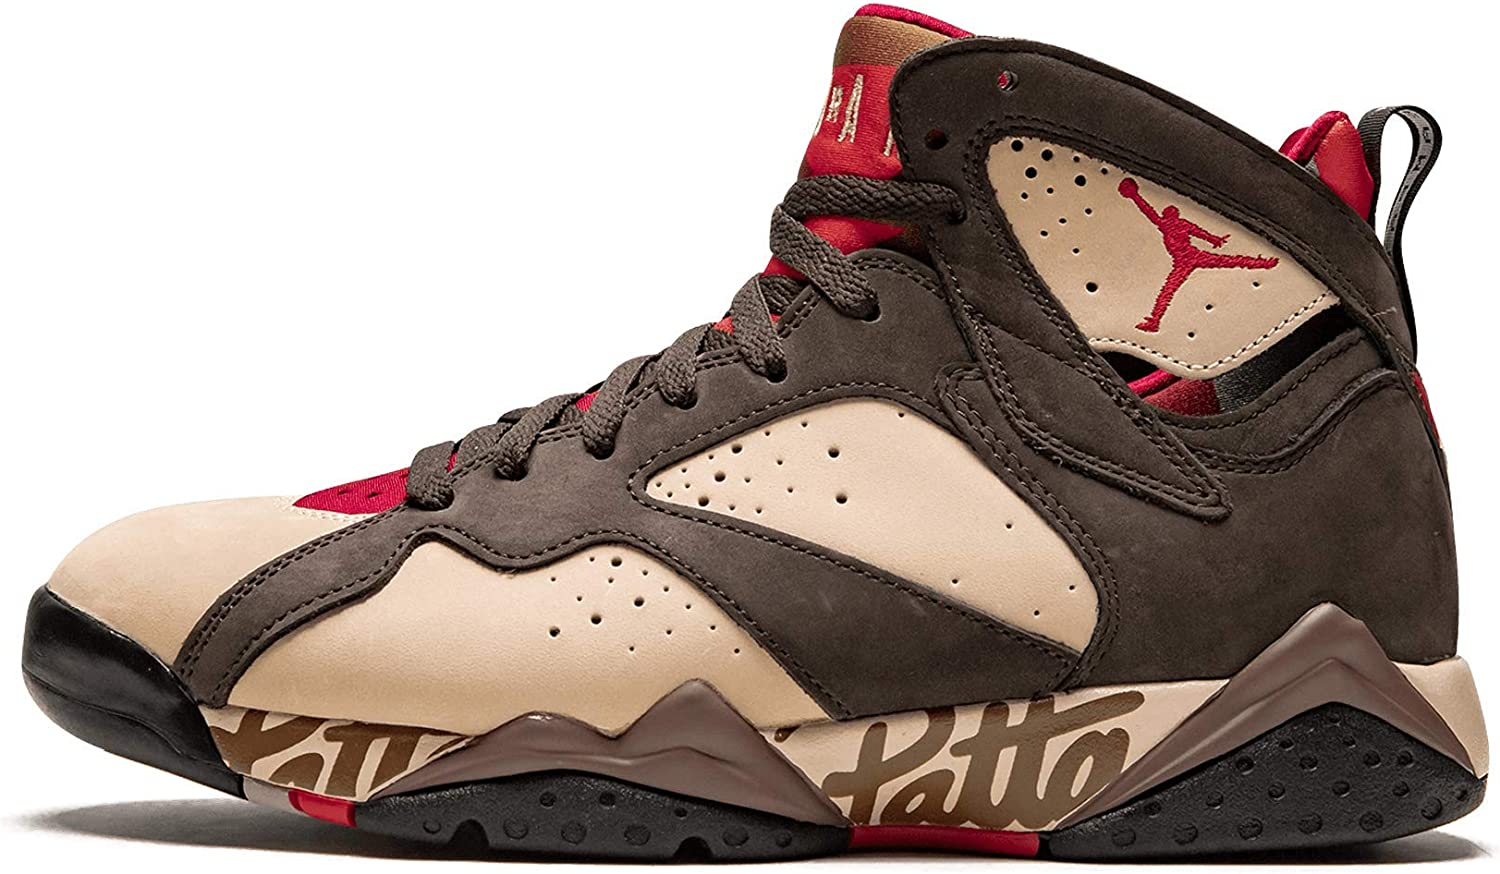 AIR JORDAN 7 Retro PATTA 'PATTA'